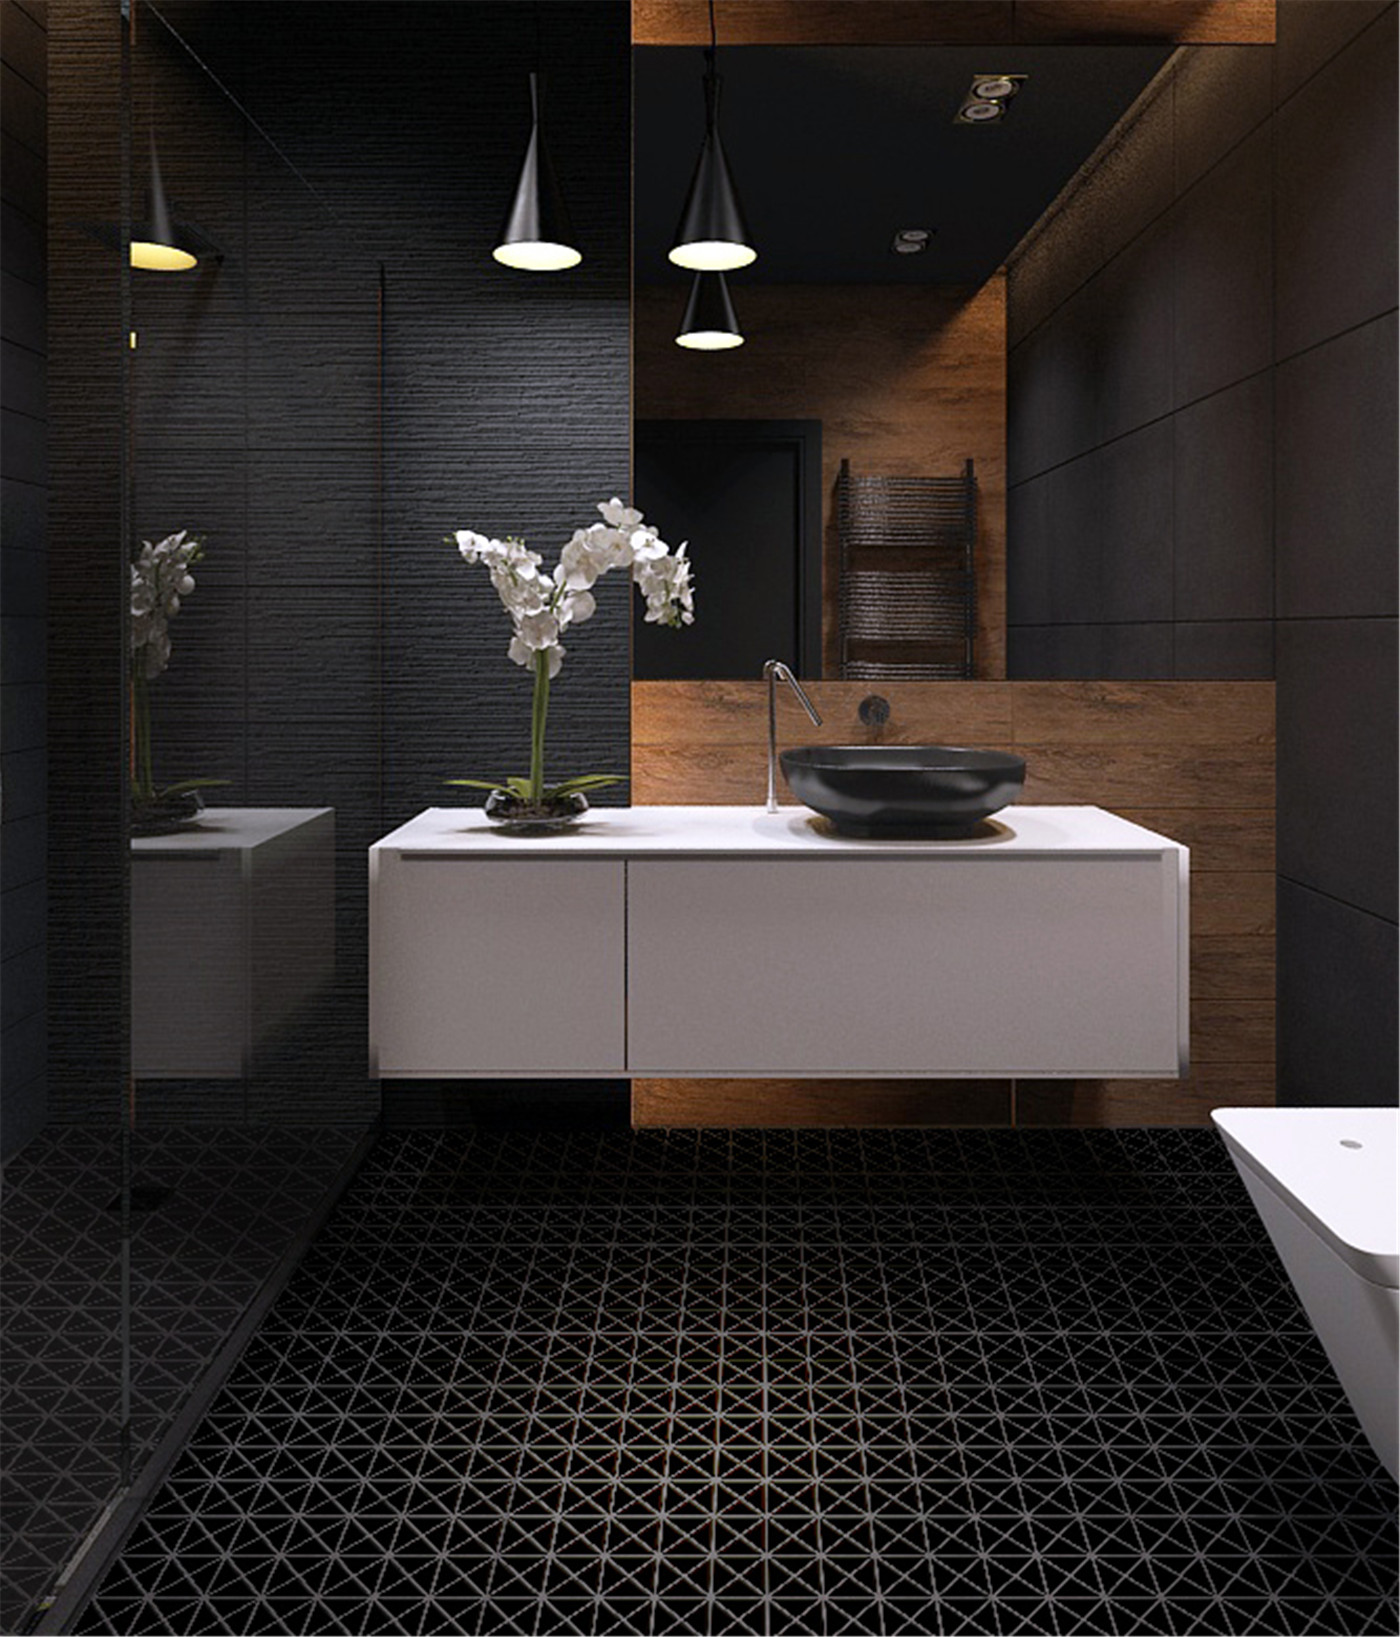 2 pure black matte porcelain triangle mosaic floor tile bathroom tr2 mb8 matte pure black triangle tile porcelain mosaic for bathroom flooring dailygadgetfo Choice Image